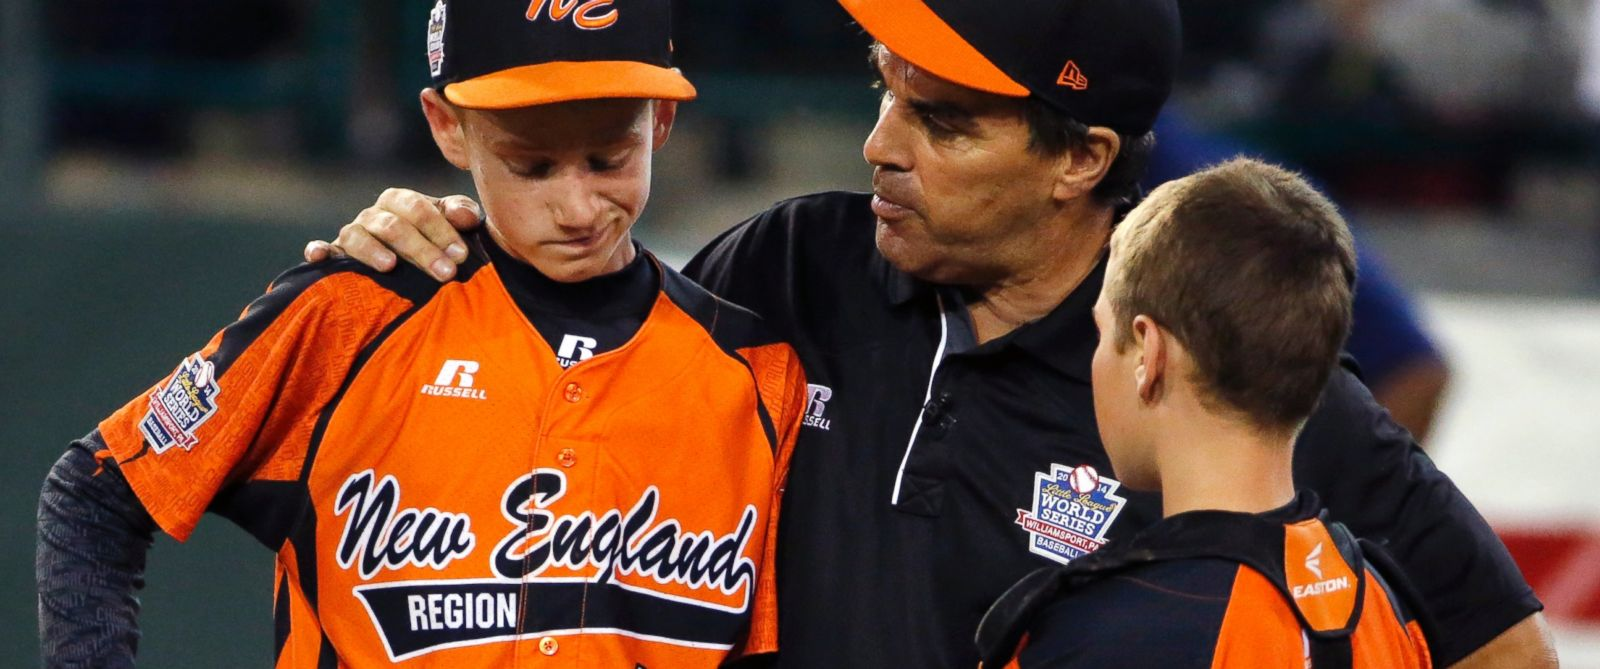 PHOTO: Cumberland manager David Belisle, center, talks with pitcher CJ Davock, left, and catcher Trey Bourque during the Little League World Series tournament in South Williamsport, Pa., Aug. 18, 2014.